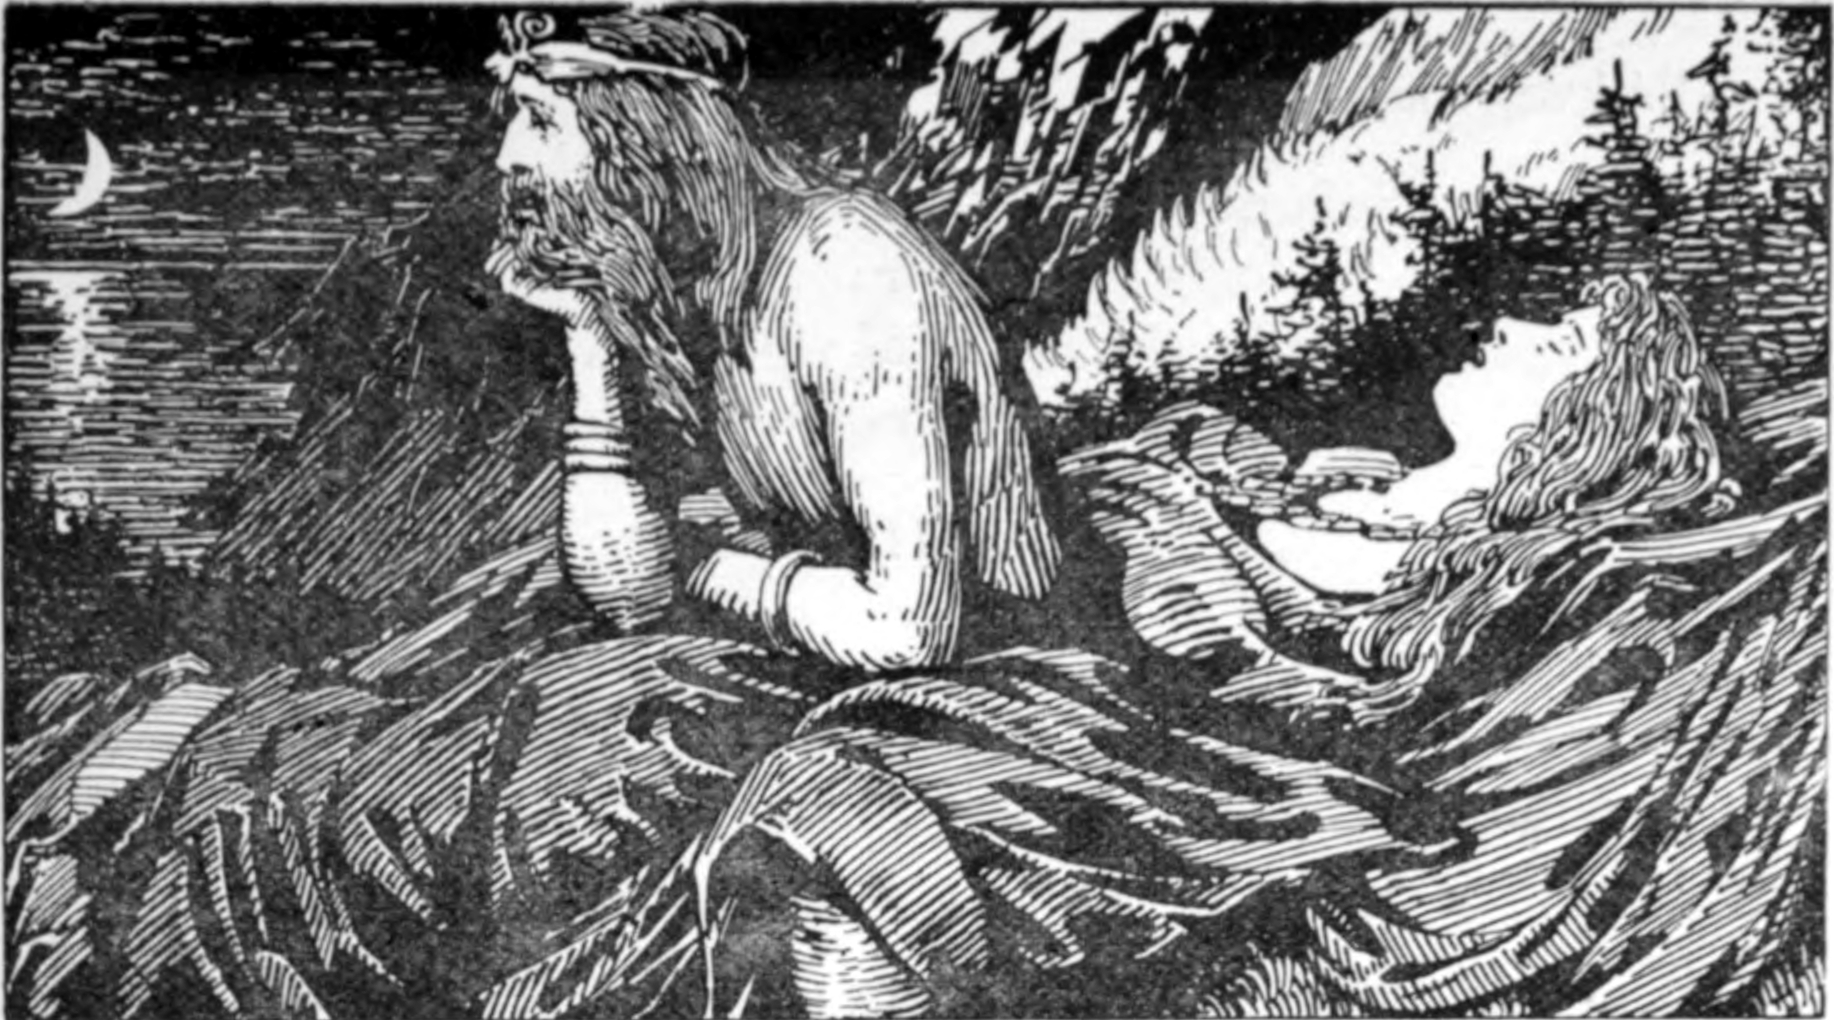 By W.G. Collingwood (1854 - 1932) - The Elder or Poetic Edda; commonly known as Sæmund's Edda. Edited and translated with introduction and notes by Olive Bray. Illustrated by W.G. Collingwood (1908) Page 271. Digitized by the Internet Archive and available from https://archive.org/details/elderorpoeticedd01brayuoft This image was made from the JPEG 2000 image of the relevant page via image processing (crop, rotate, color-levels, mode) with the GIMP by User:Haukurth. The image processing is probably not eligible for copyright but in case it is User:Haukurth releases his modified version into the public domain., Public Domain, https://commons.wikimedia.org/w/index.php?curid=4589553